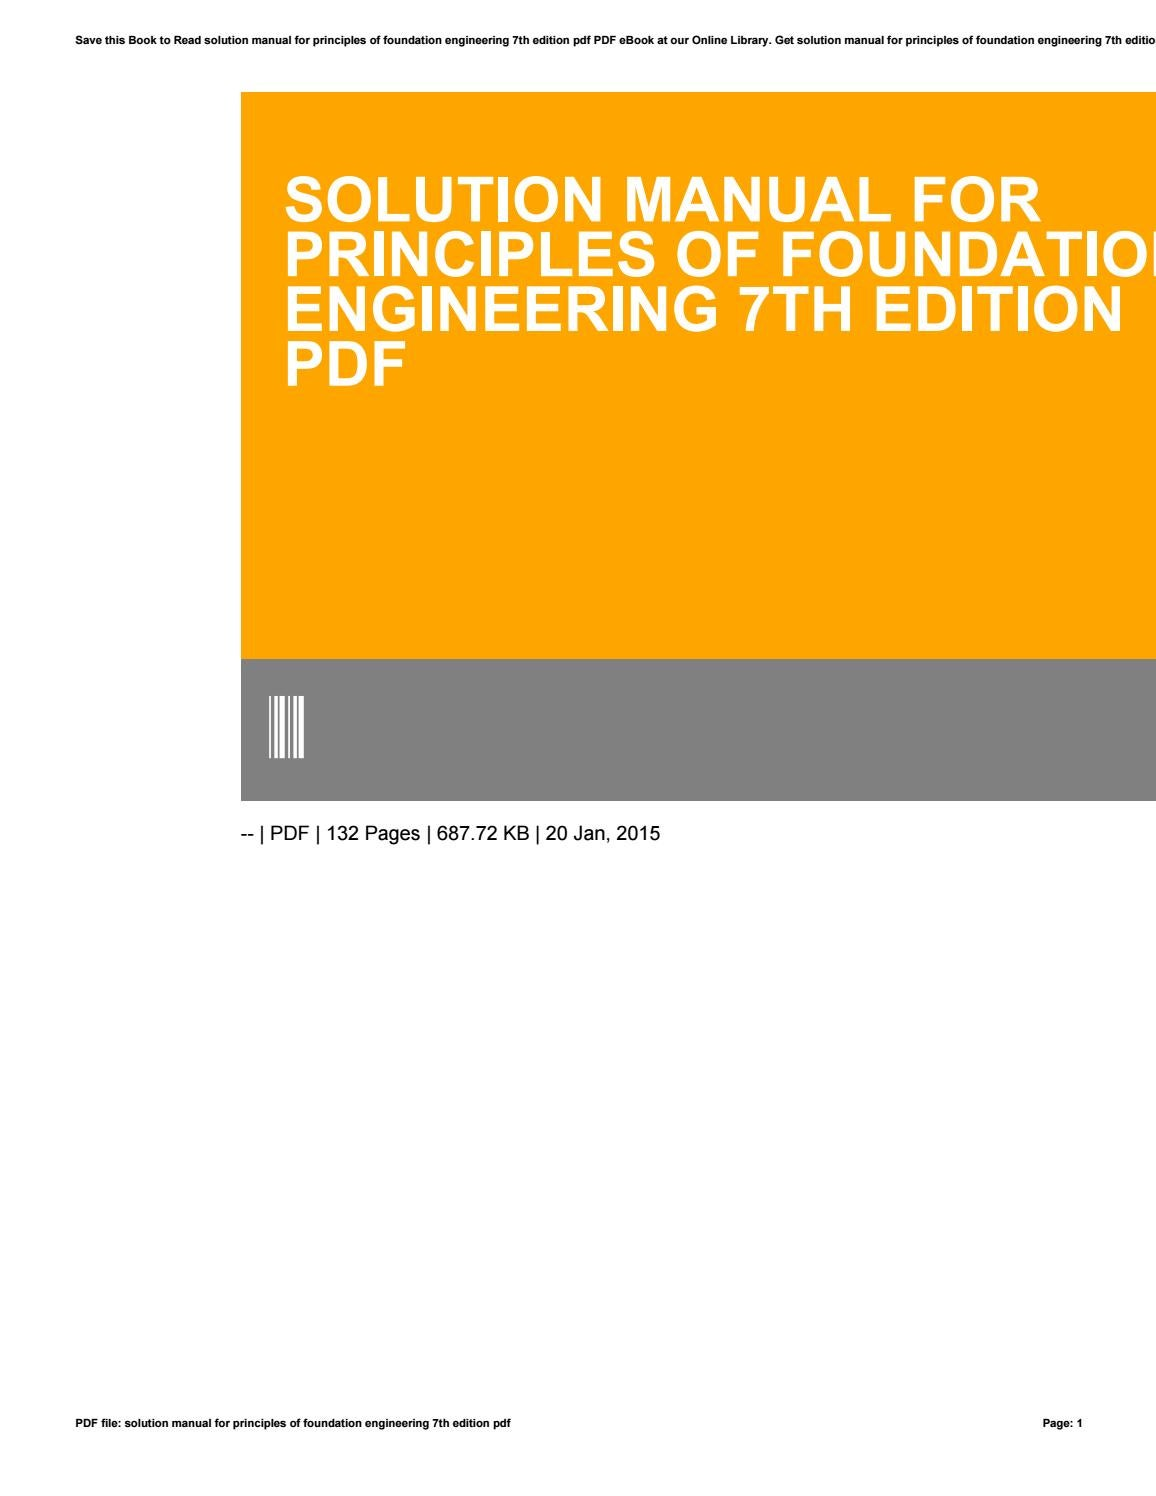 Solution Manual For Principles Of Foundation Engineering 7th Edition Pdf By Wulan13amartha